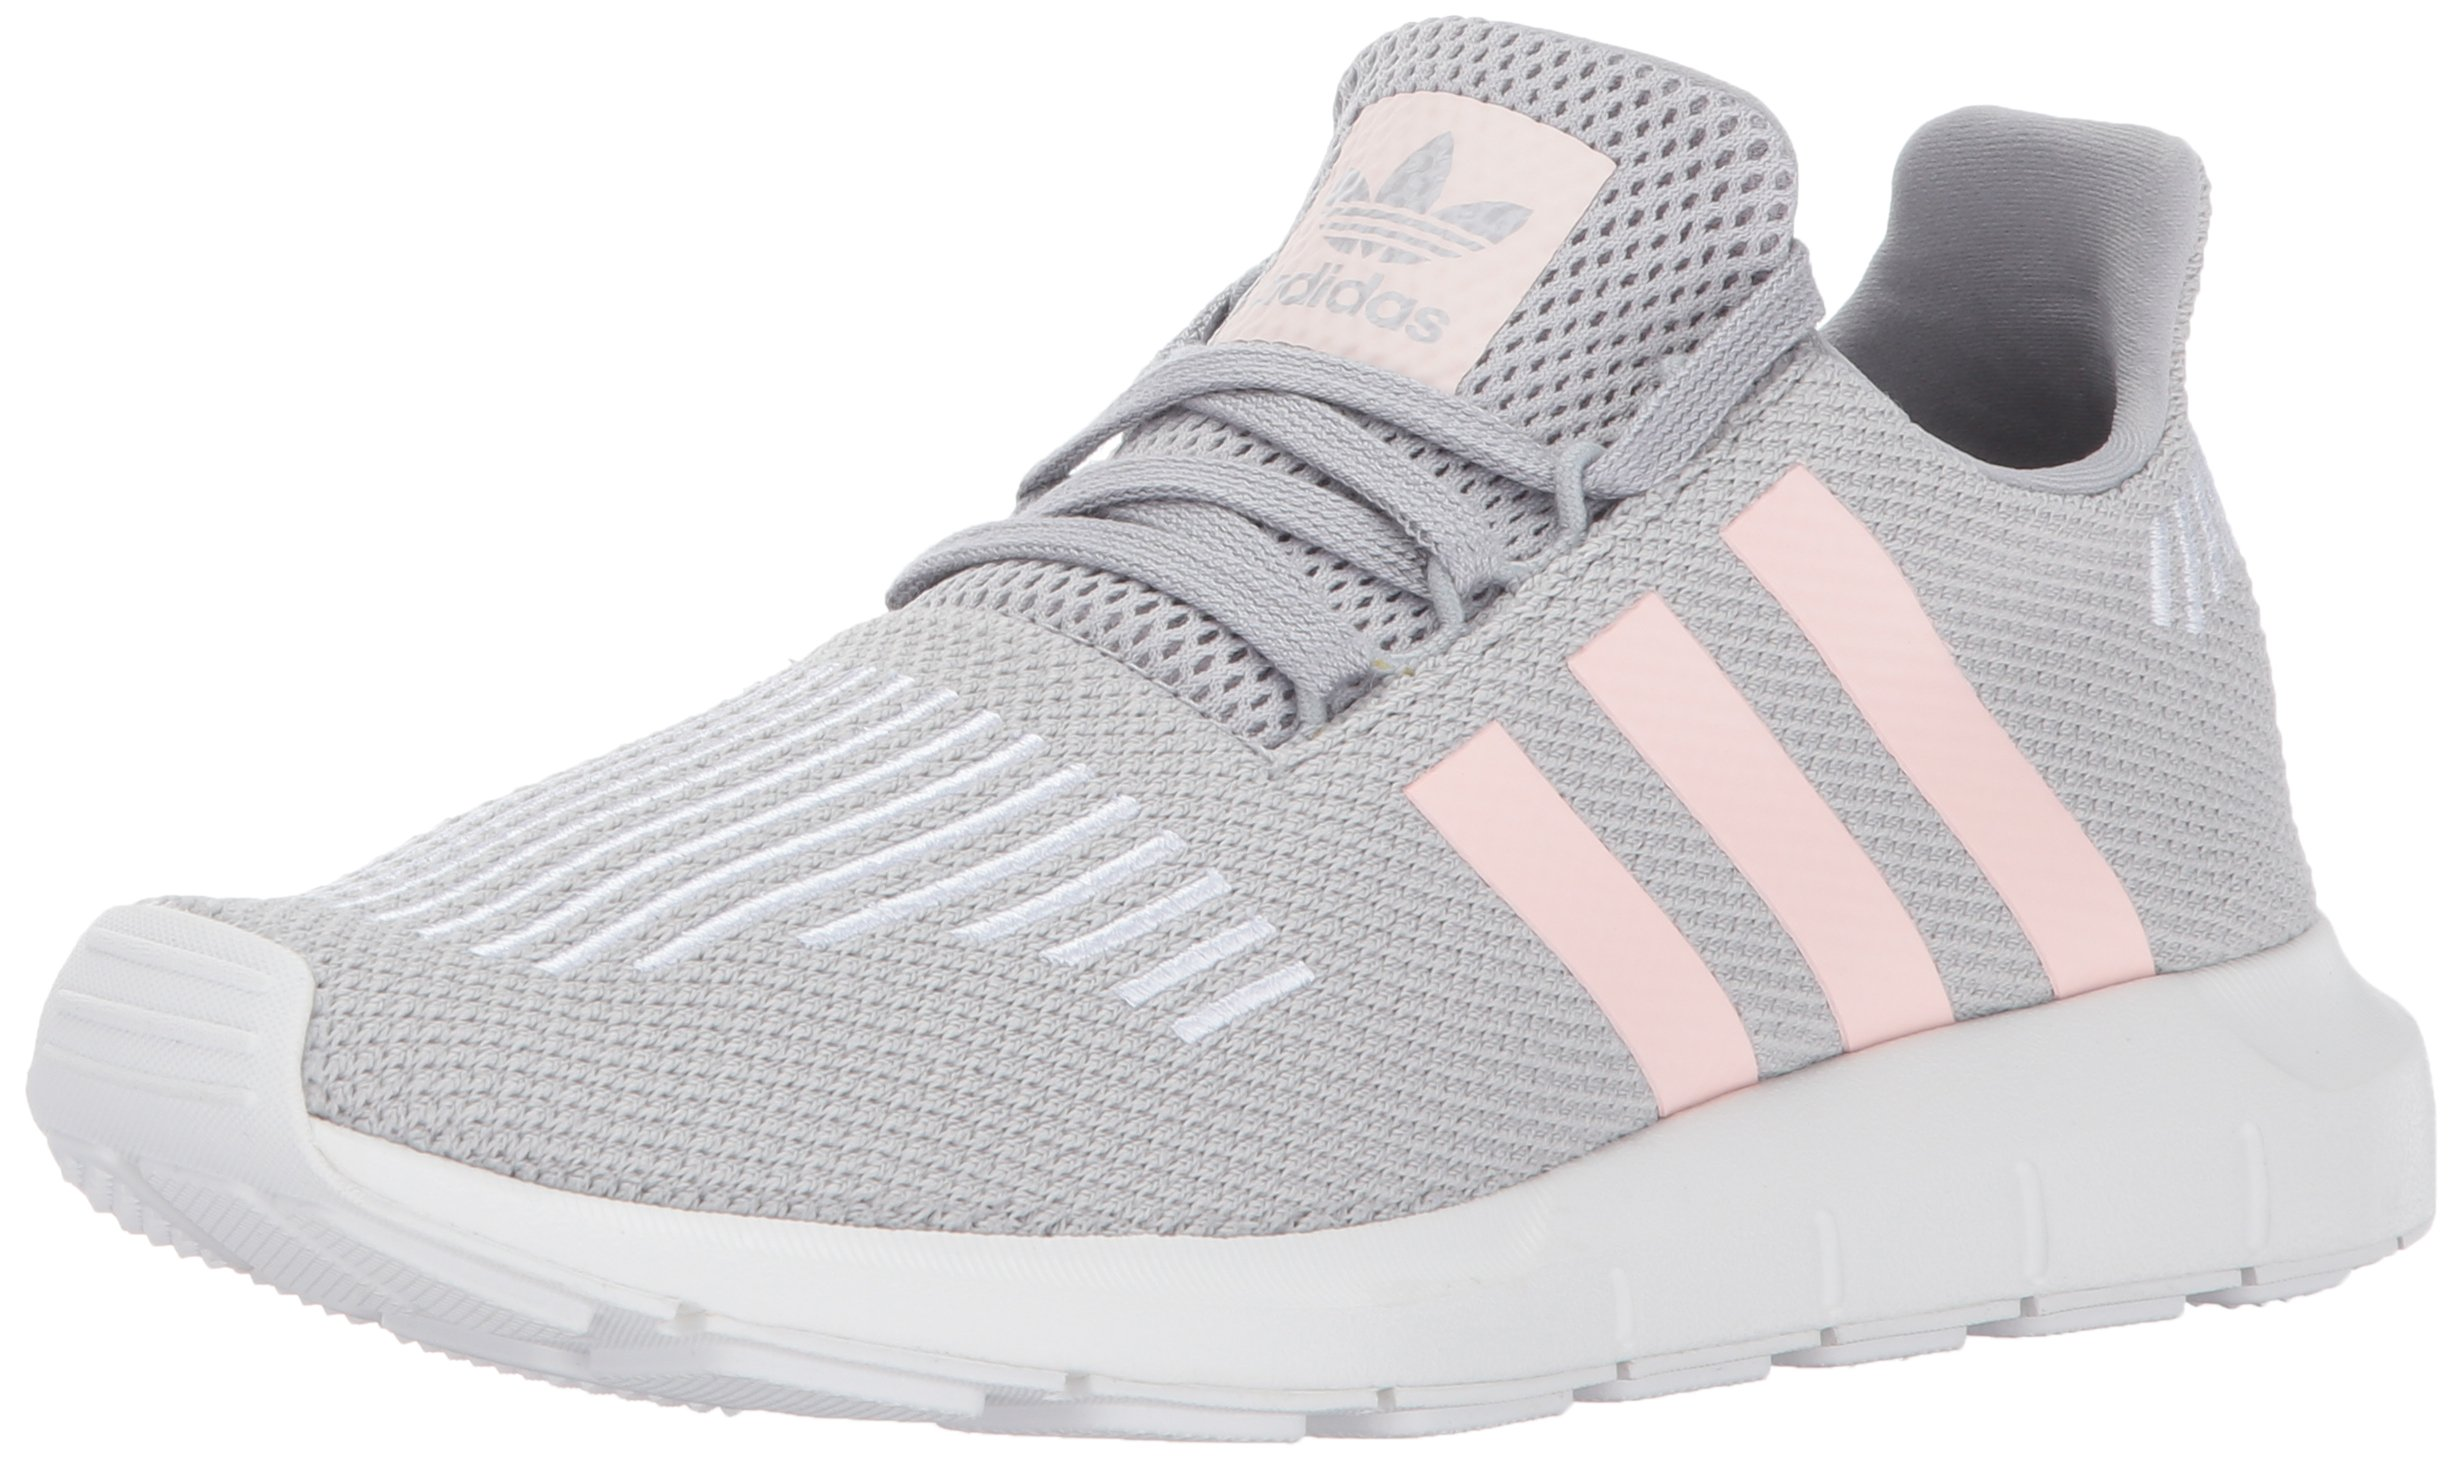 adidas Originals Women's Swift W Running-Shoes,Grey Two/Ice Pink/White,8.5 Medium US